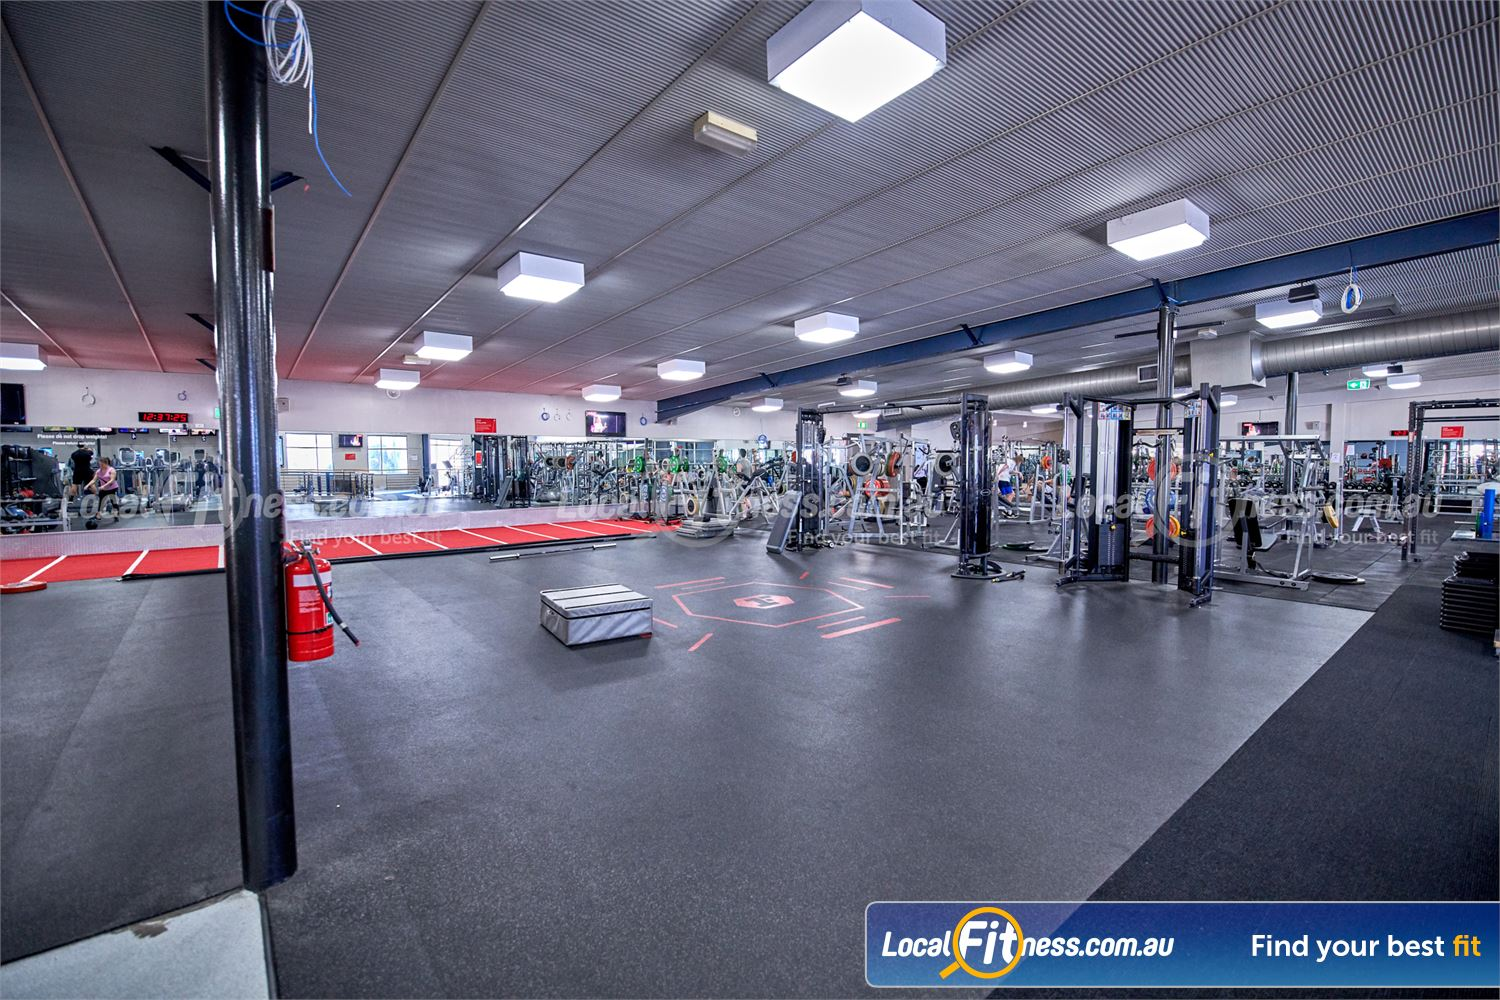 Fitness First Bayside Highett Welcome to the Fitness First Bayside gym.